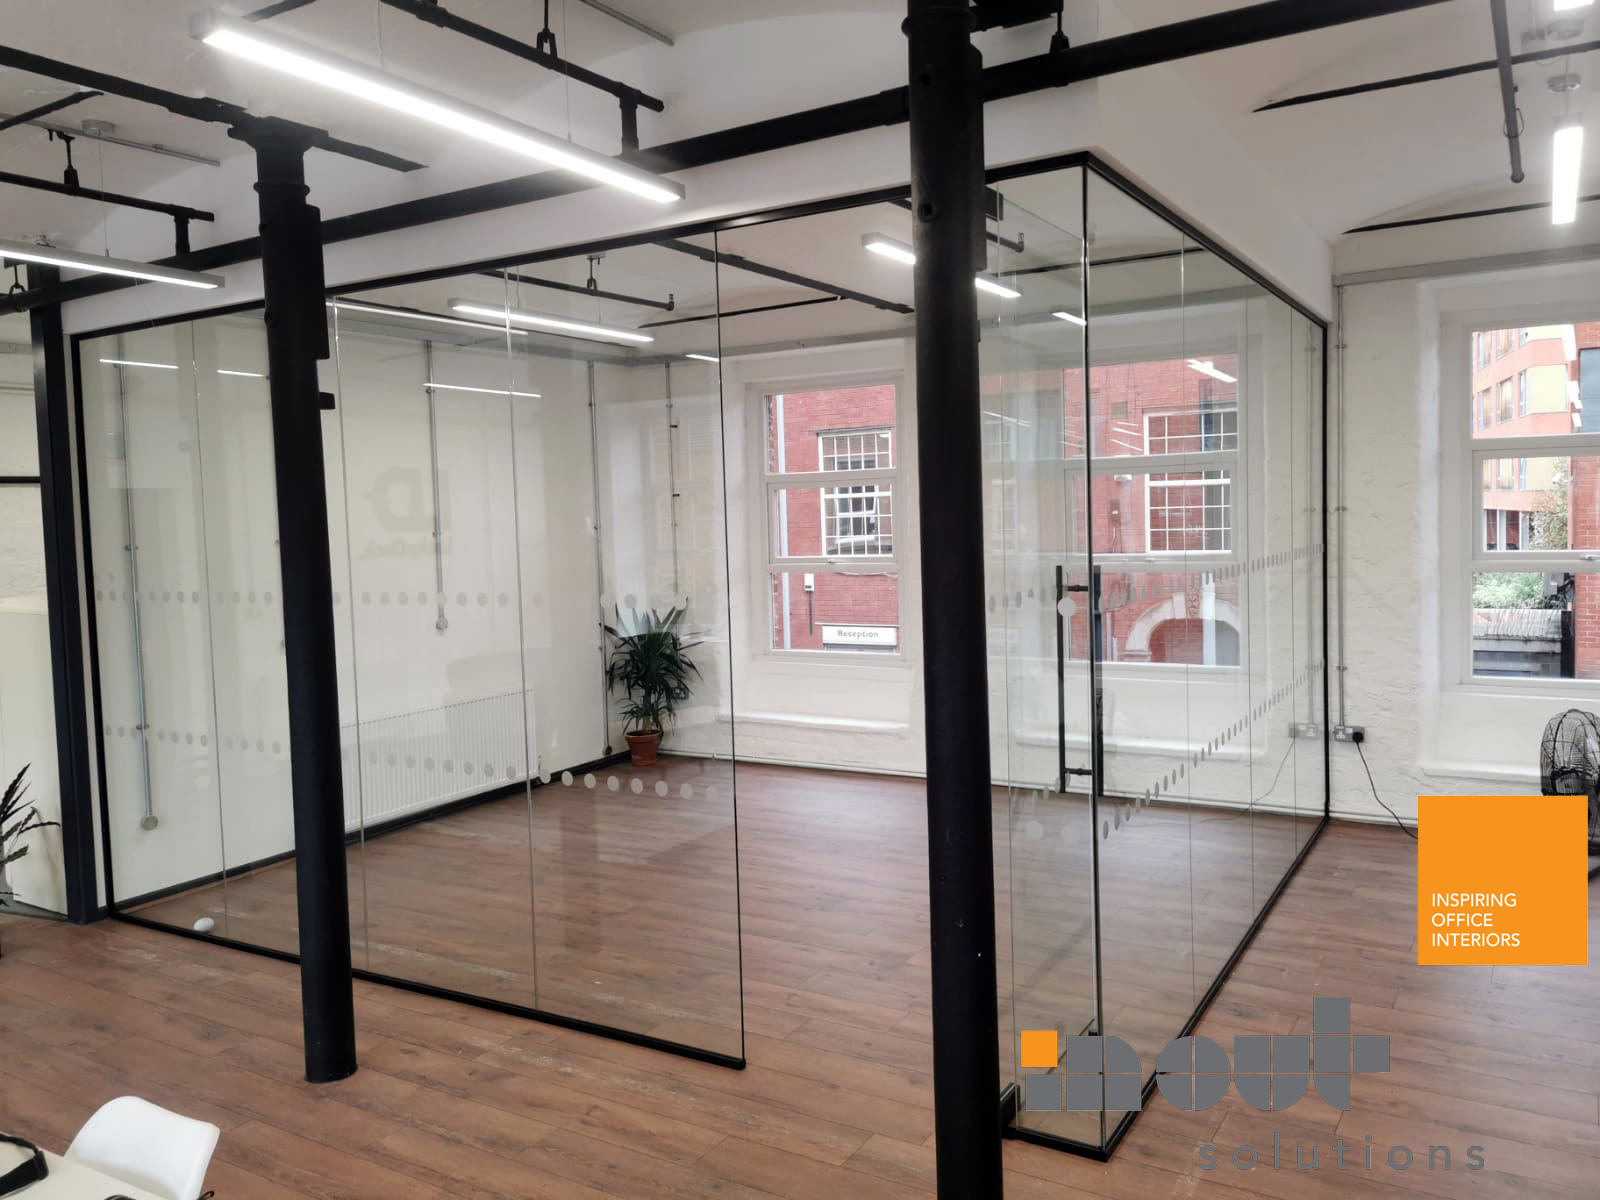 Glass Room Walls Dividers Cost UK Interior Doors Home Installers Glazed Office Partitions Costs Installed Leeds Prices Yorkshire Noise Reducing Double Single Glazing -